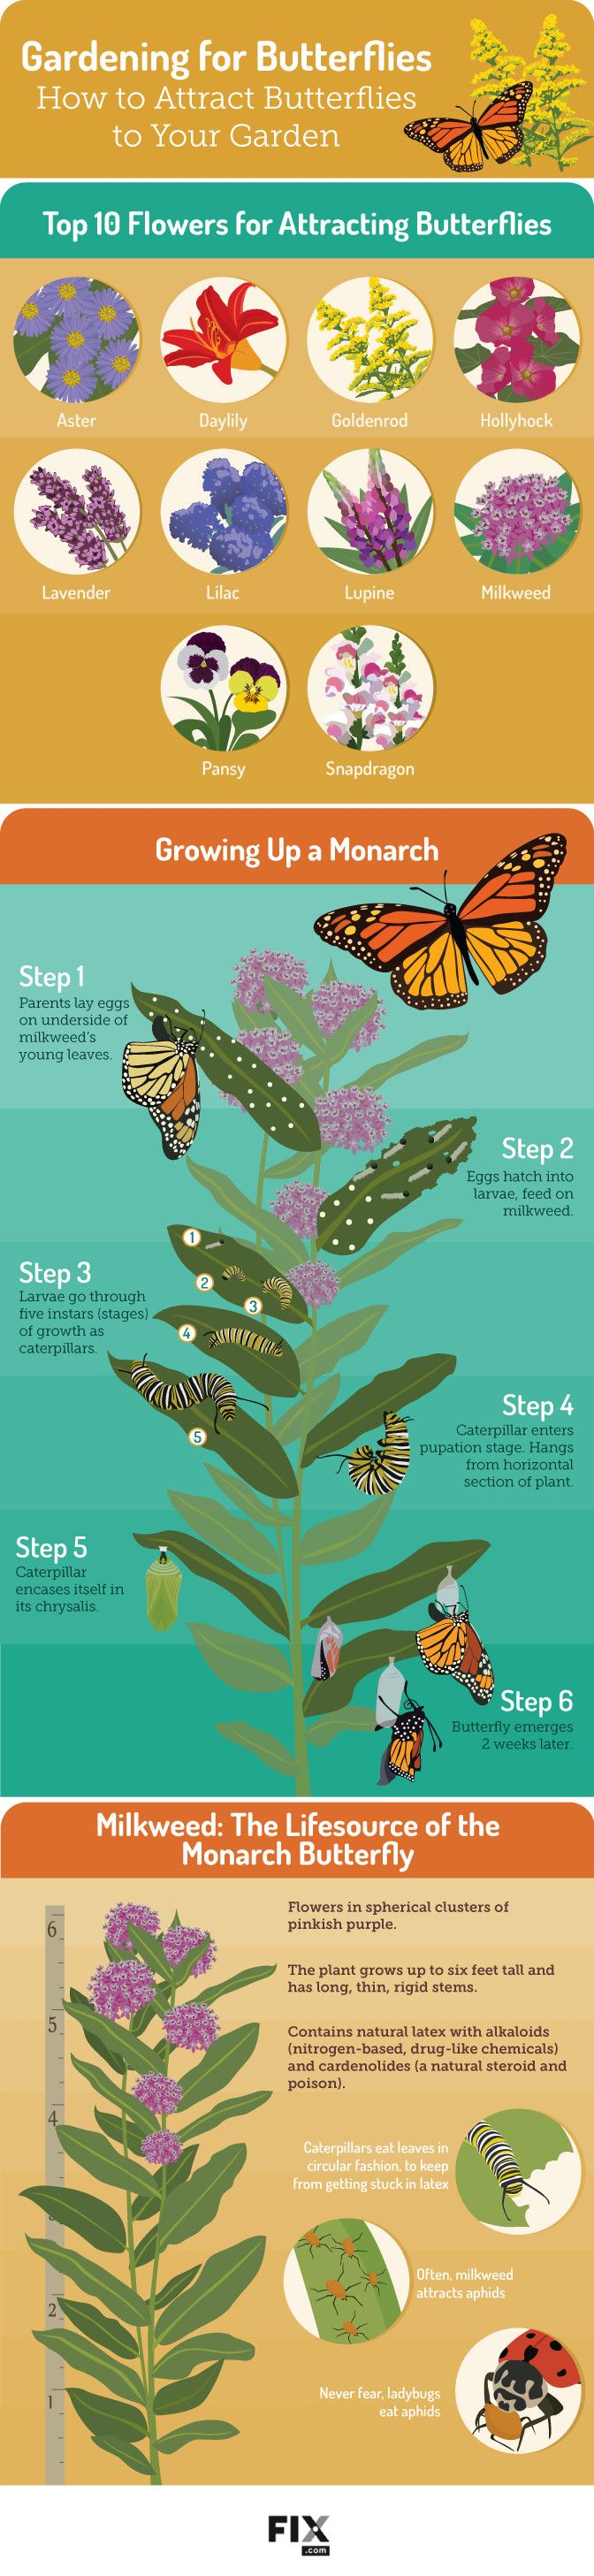 122 best bees and butterflies images on pinterest flower 122 best bees and butterflies images on pinterest flower gardening monarch butterfly and gardening tips dhlflorist Image collections